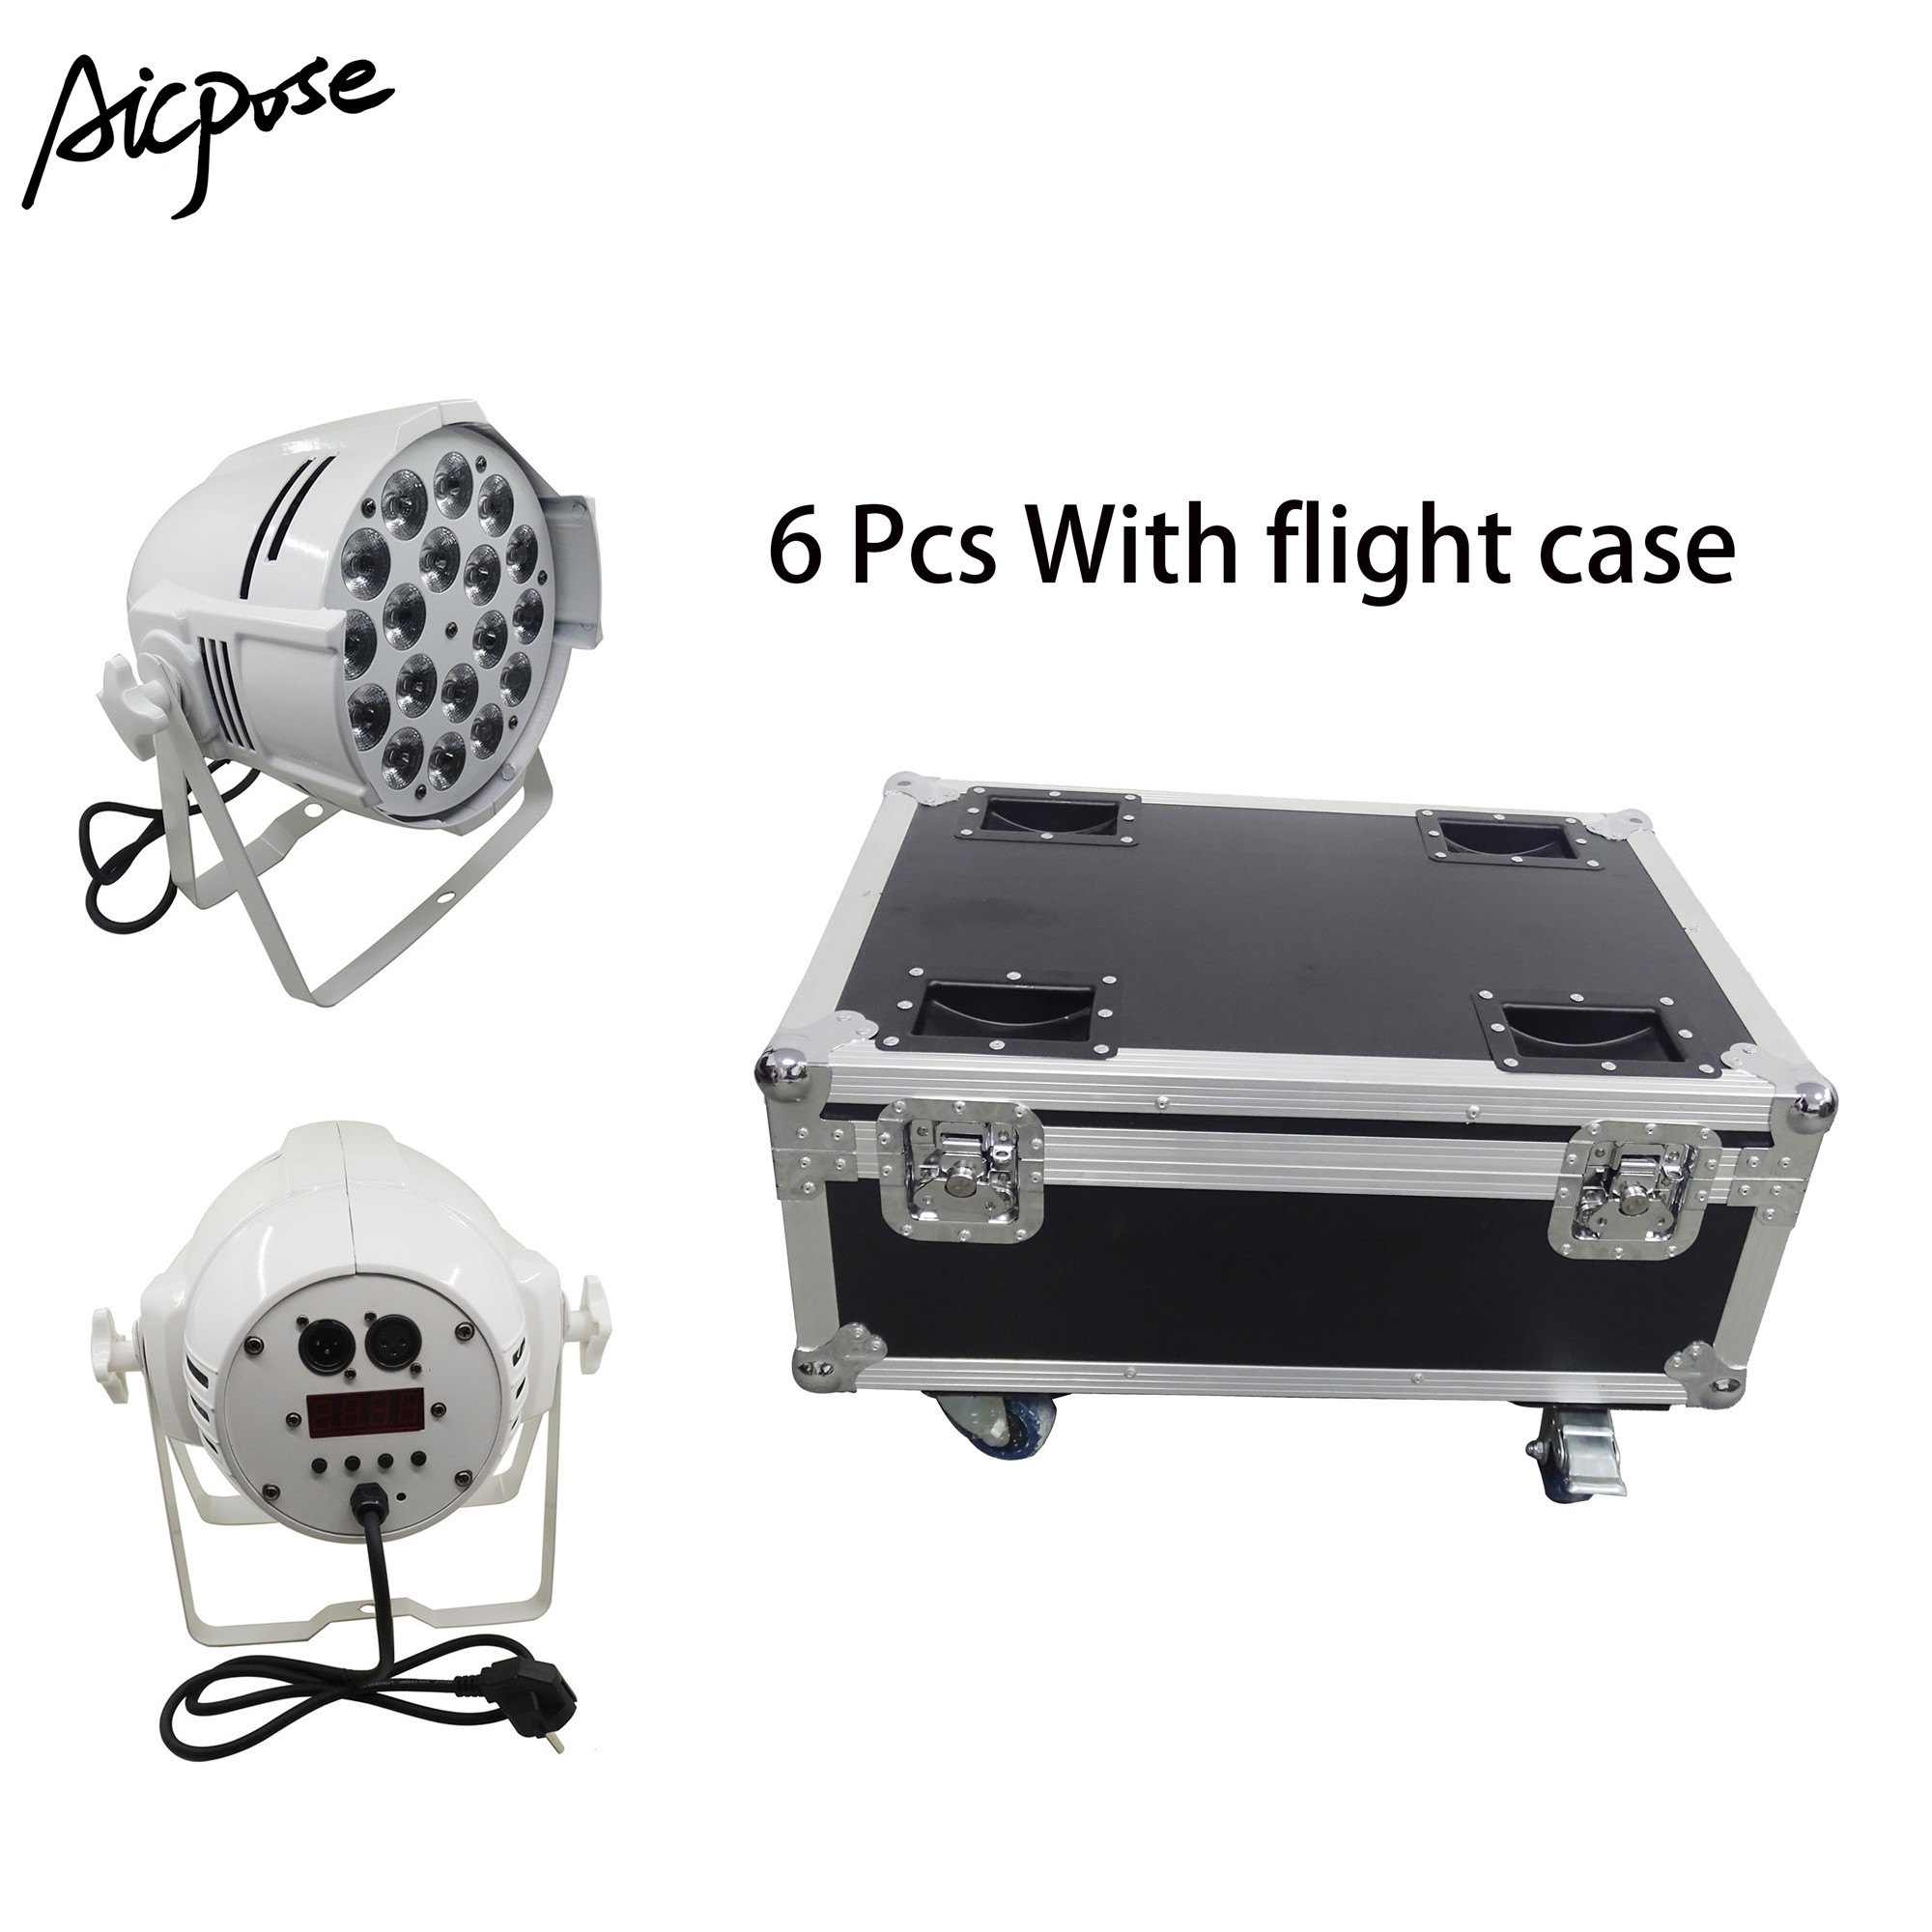 6pcs 18*10w Light Aluminum LED Par 18x10W RGBW 4in1 LED Par Can Par 64 Led Spotlight Dj Projector Stage Light With Flight Case